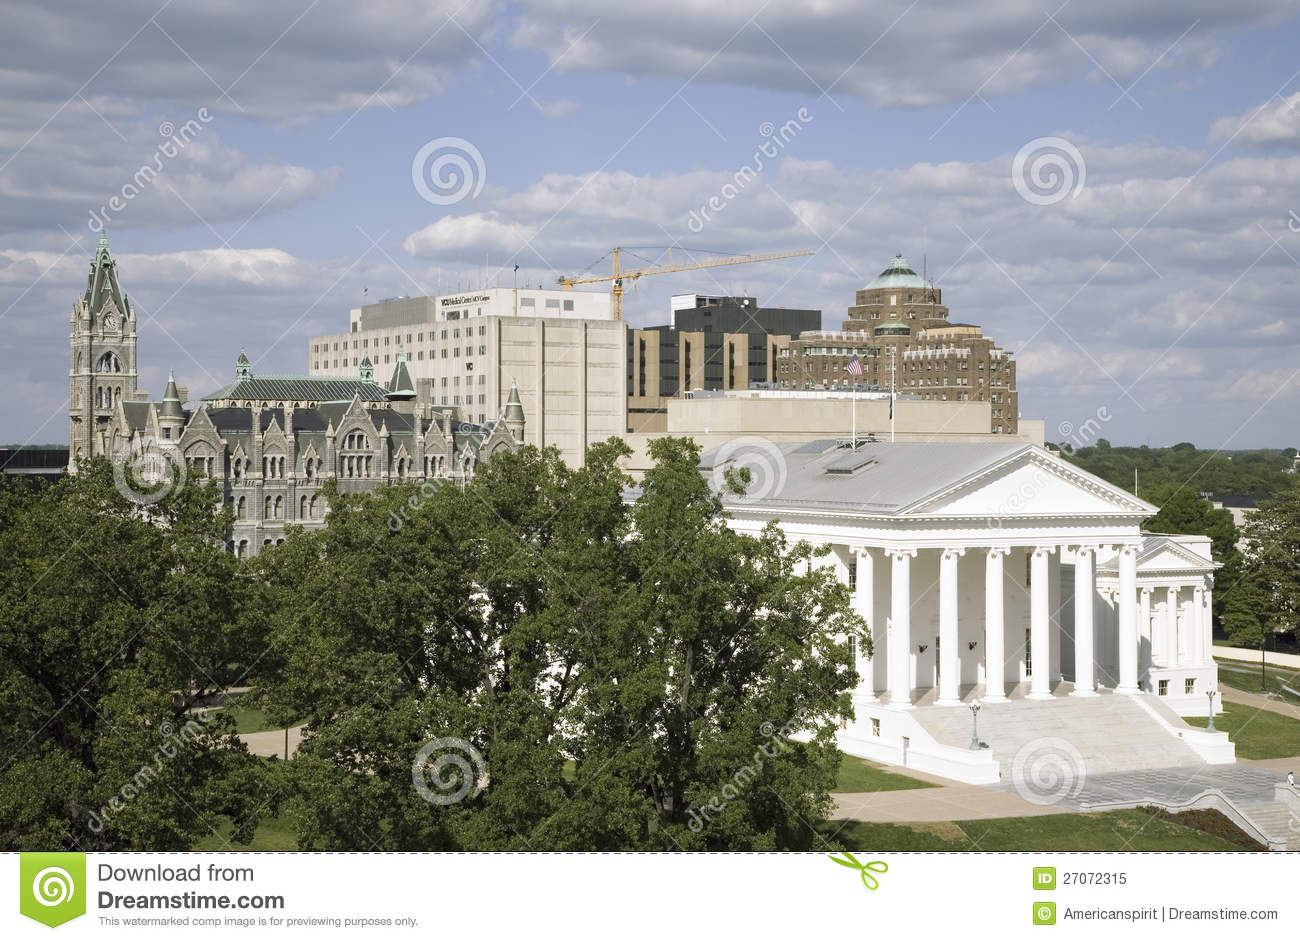 Aerial view of the 2007 restored Virginia State Capitol